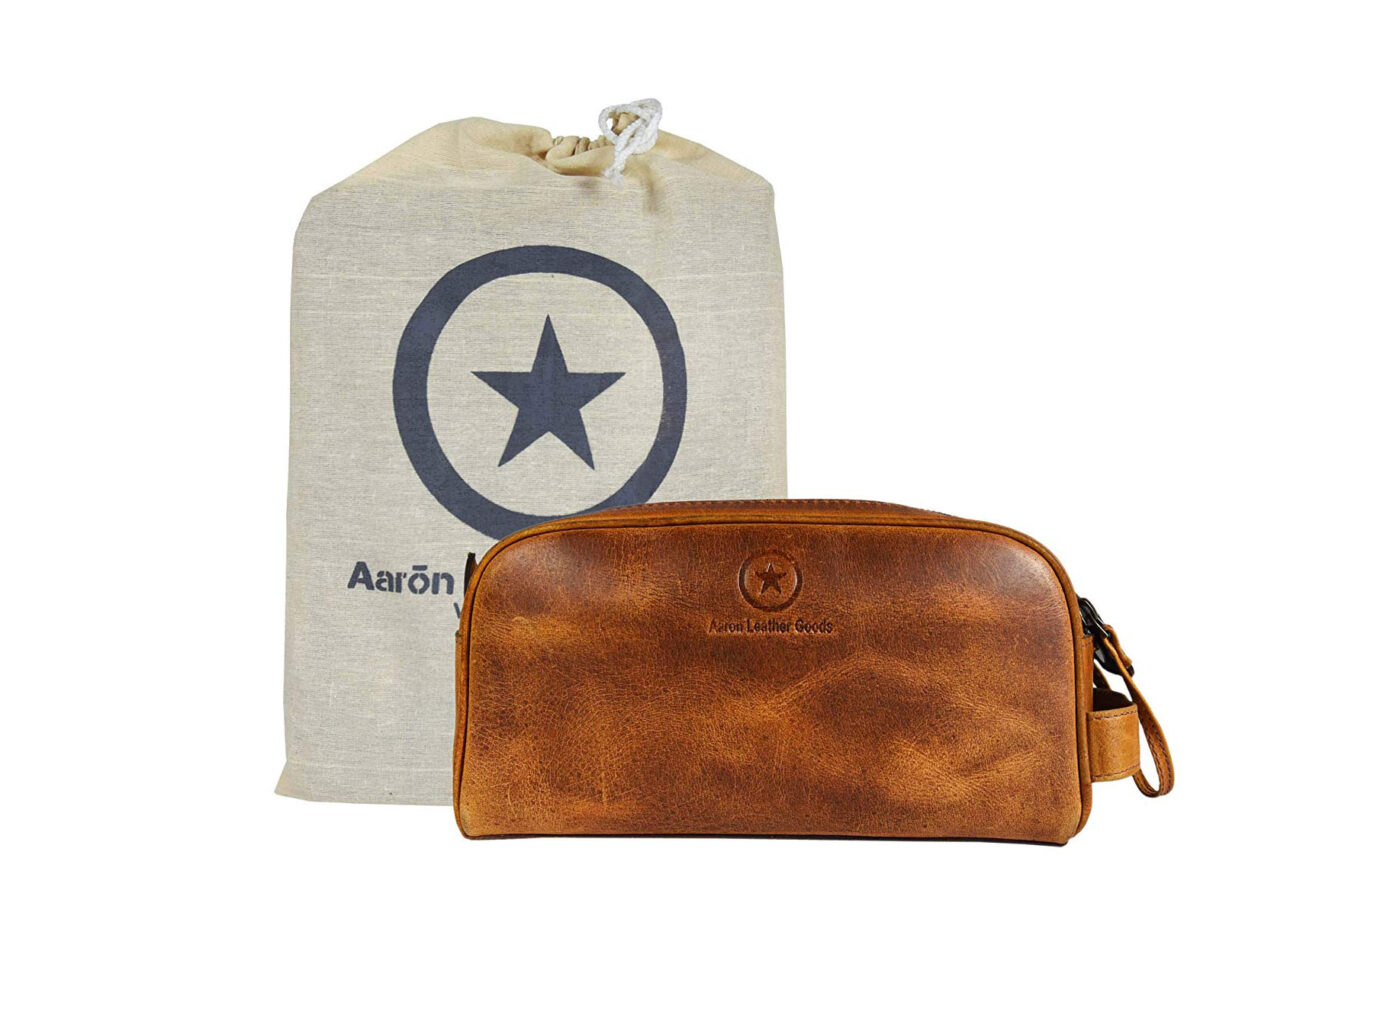 Aaron Leather Goods Toiletry Travel Pouch